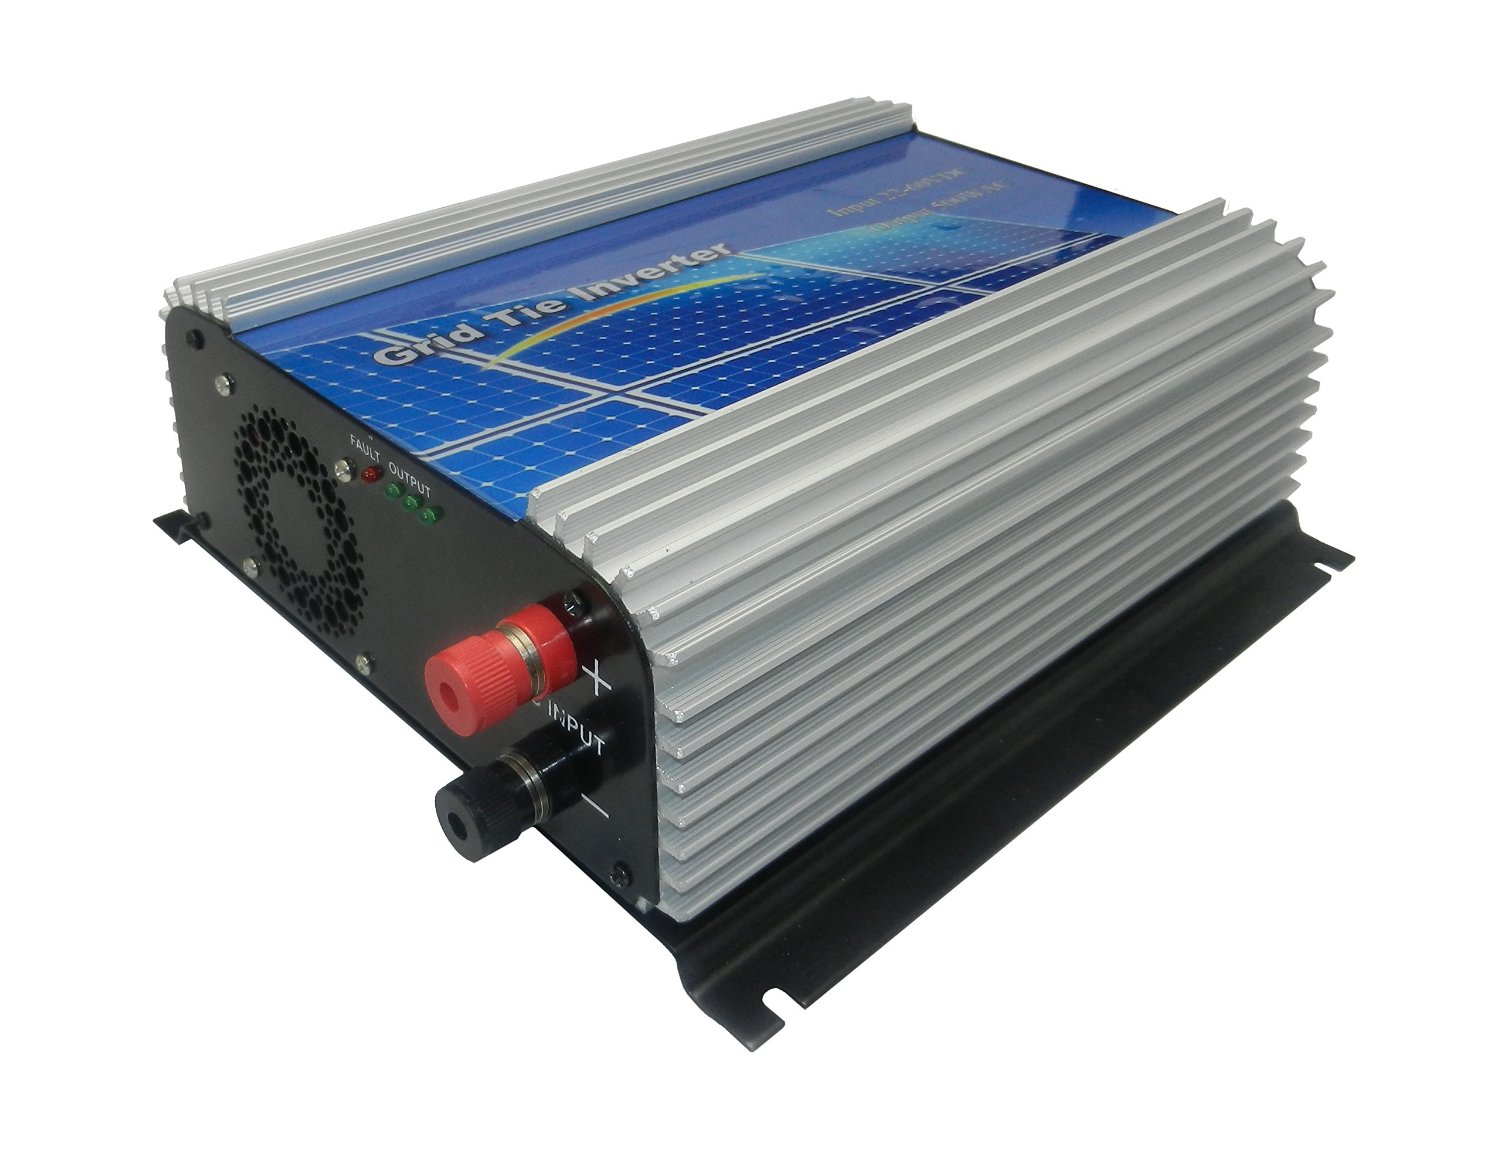 DECEN 500w(SUN-500G) High Efficiency Grid Tie Micro Inverter Output Pure Sine Wave, 22-60vdc,110vac,60hz for Home Solar System